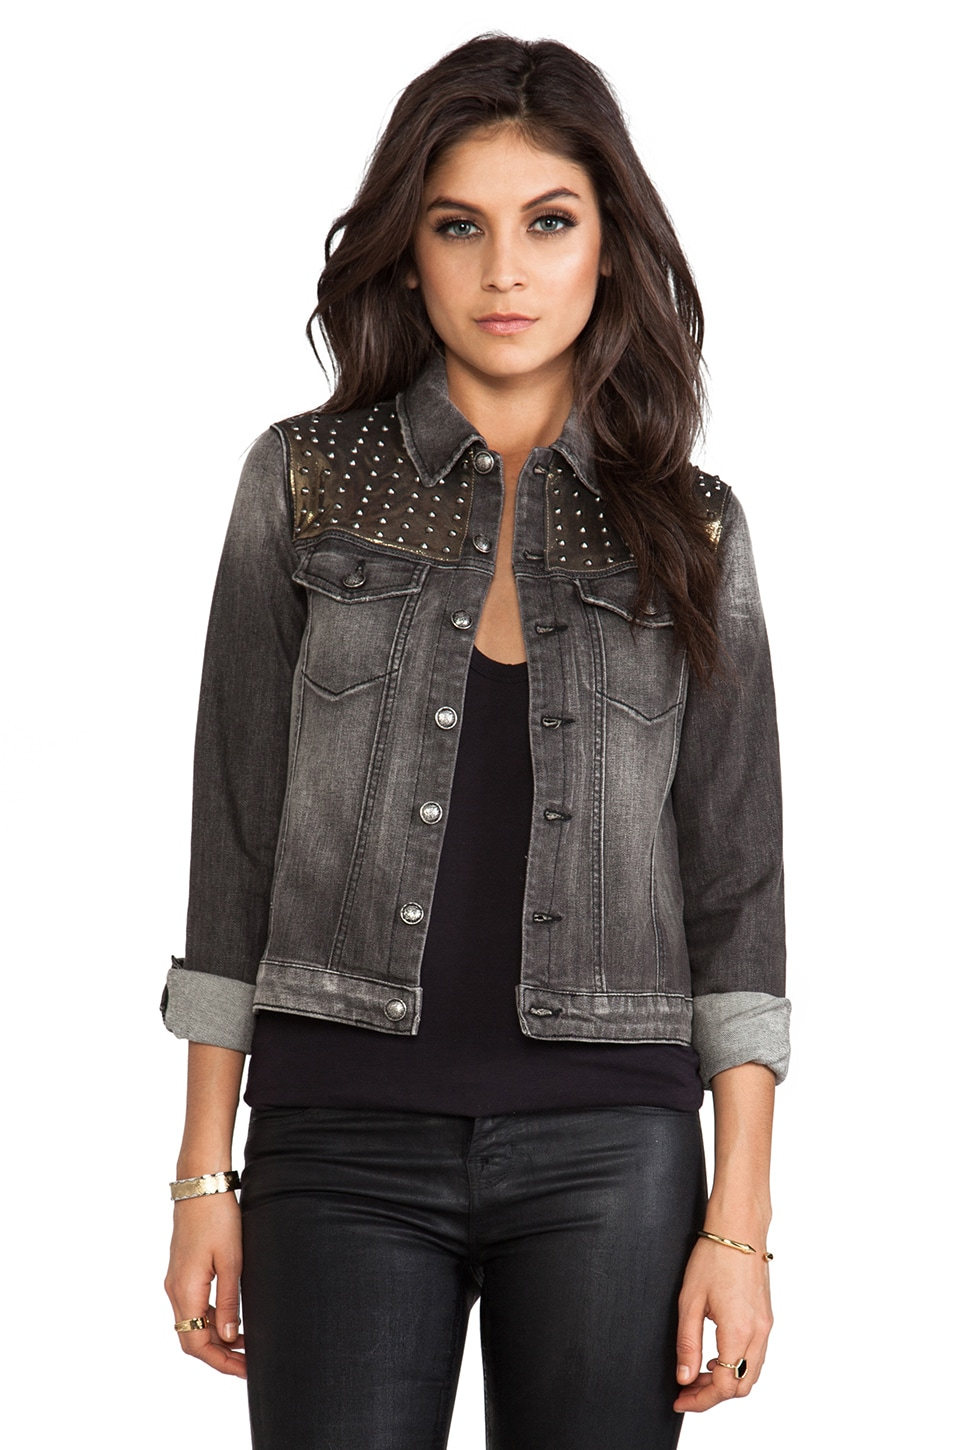 Frankie B. Jeans Armanda Denim Jacket in Dirty Black | REVOLVE